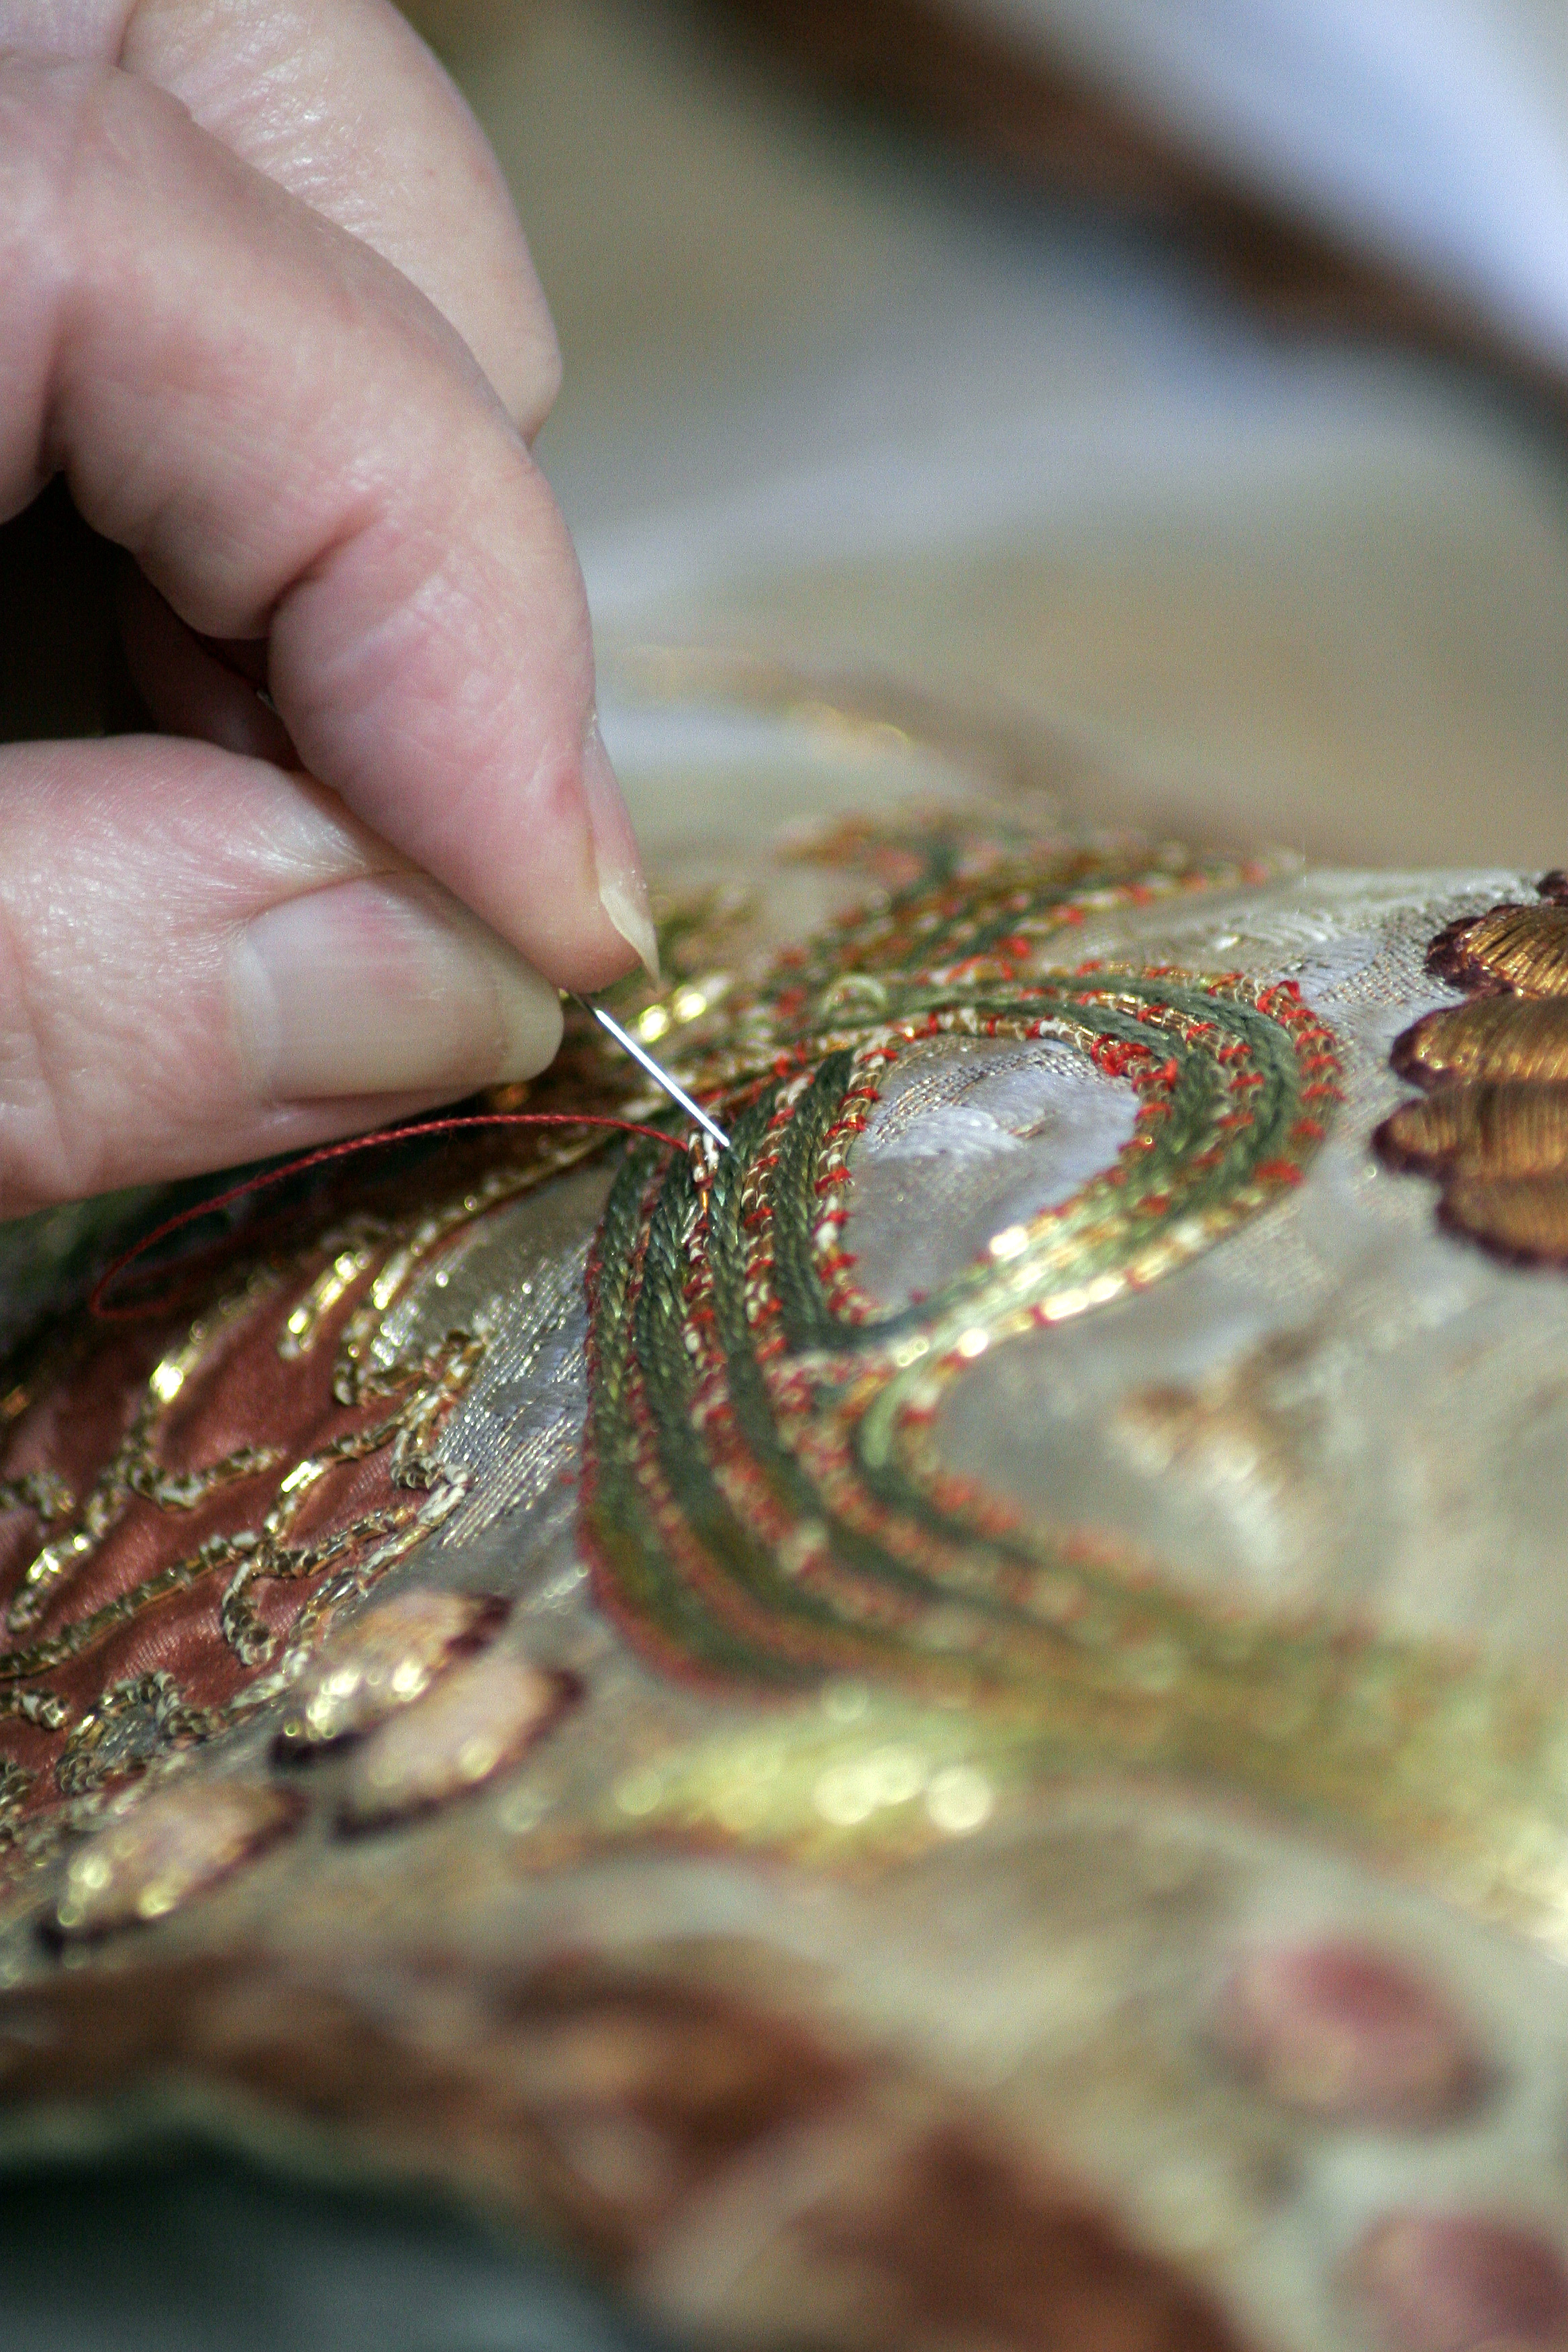 Photo by robbie munn of the embroiderers hard at work